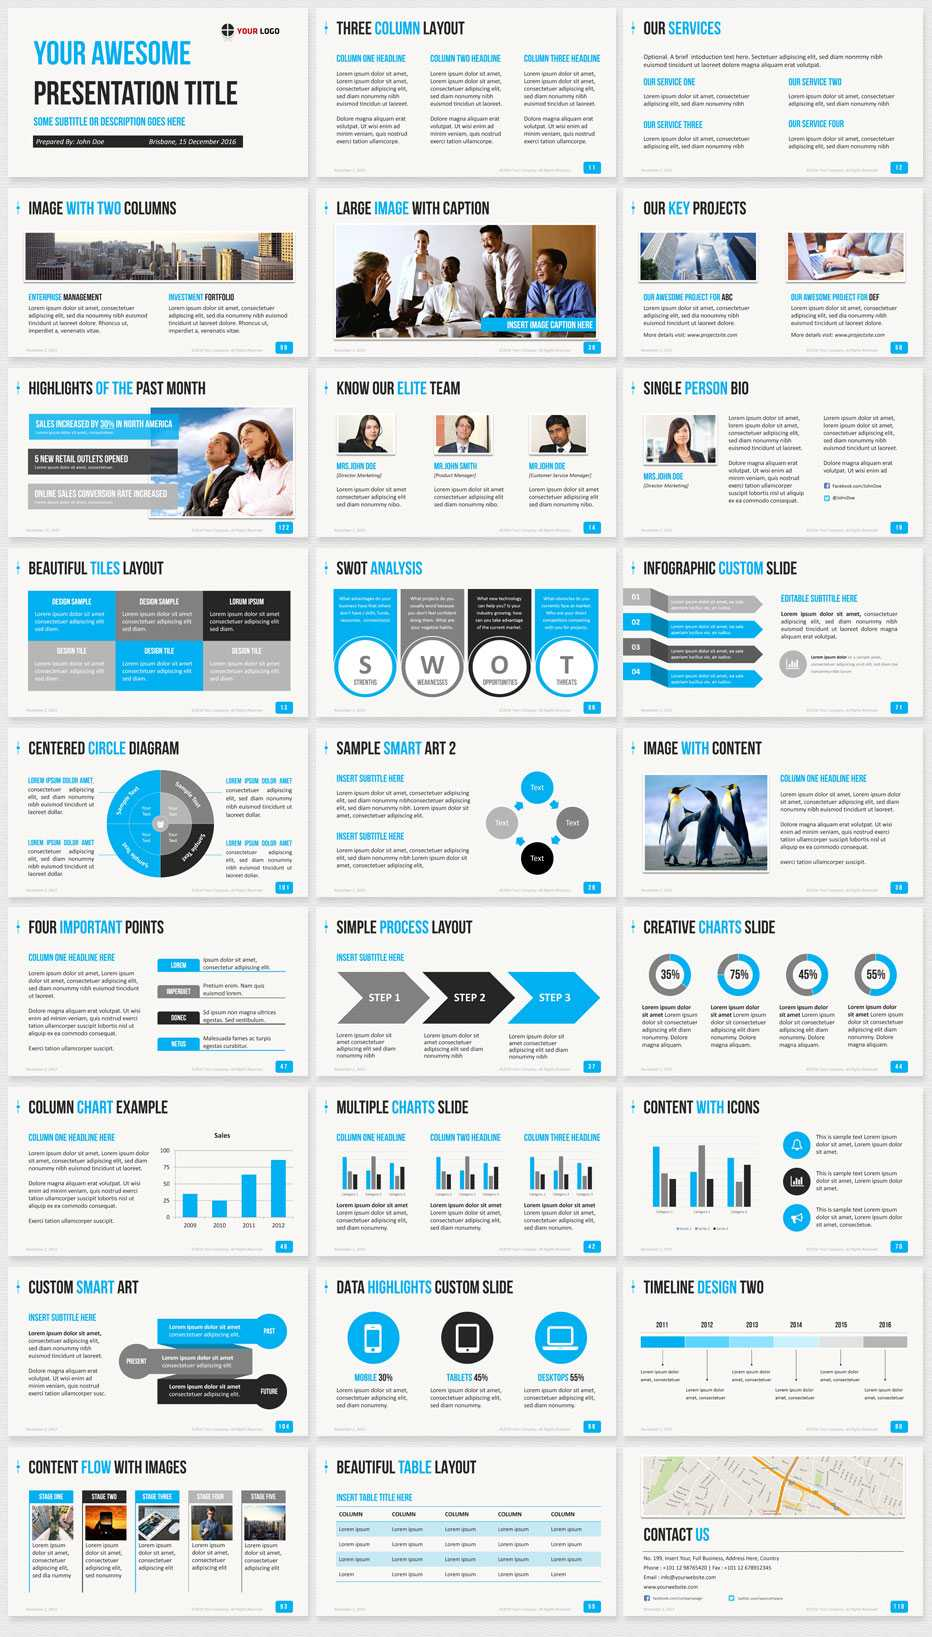 Ultimate Professional Business Powerpoint Template - 1650+ regarding Powerpoint Photo Slideshow Template